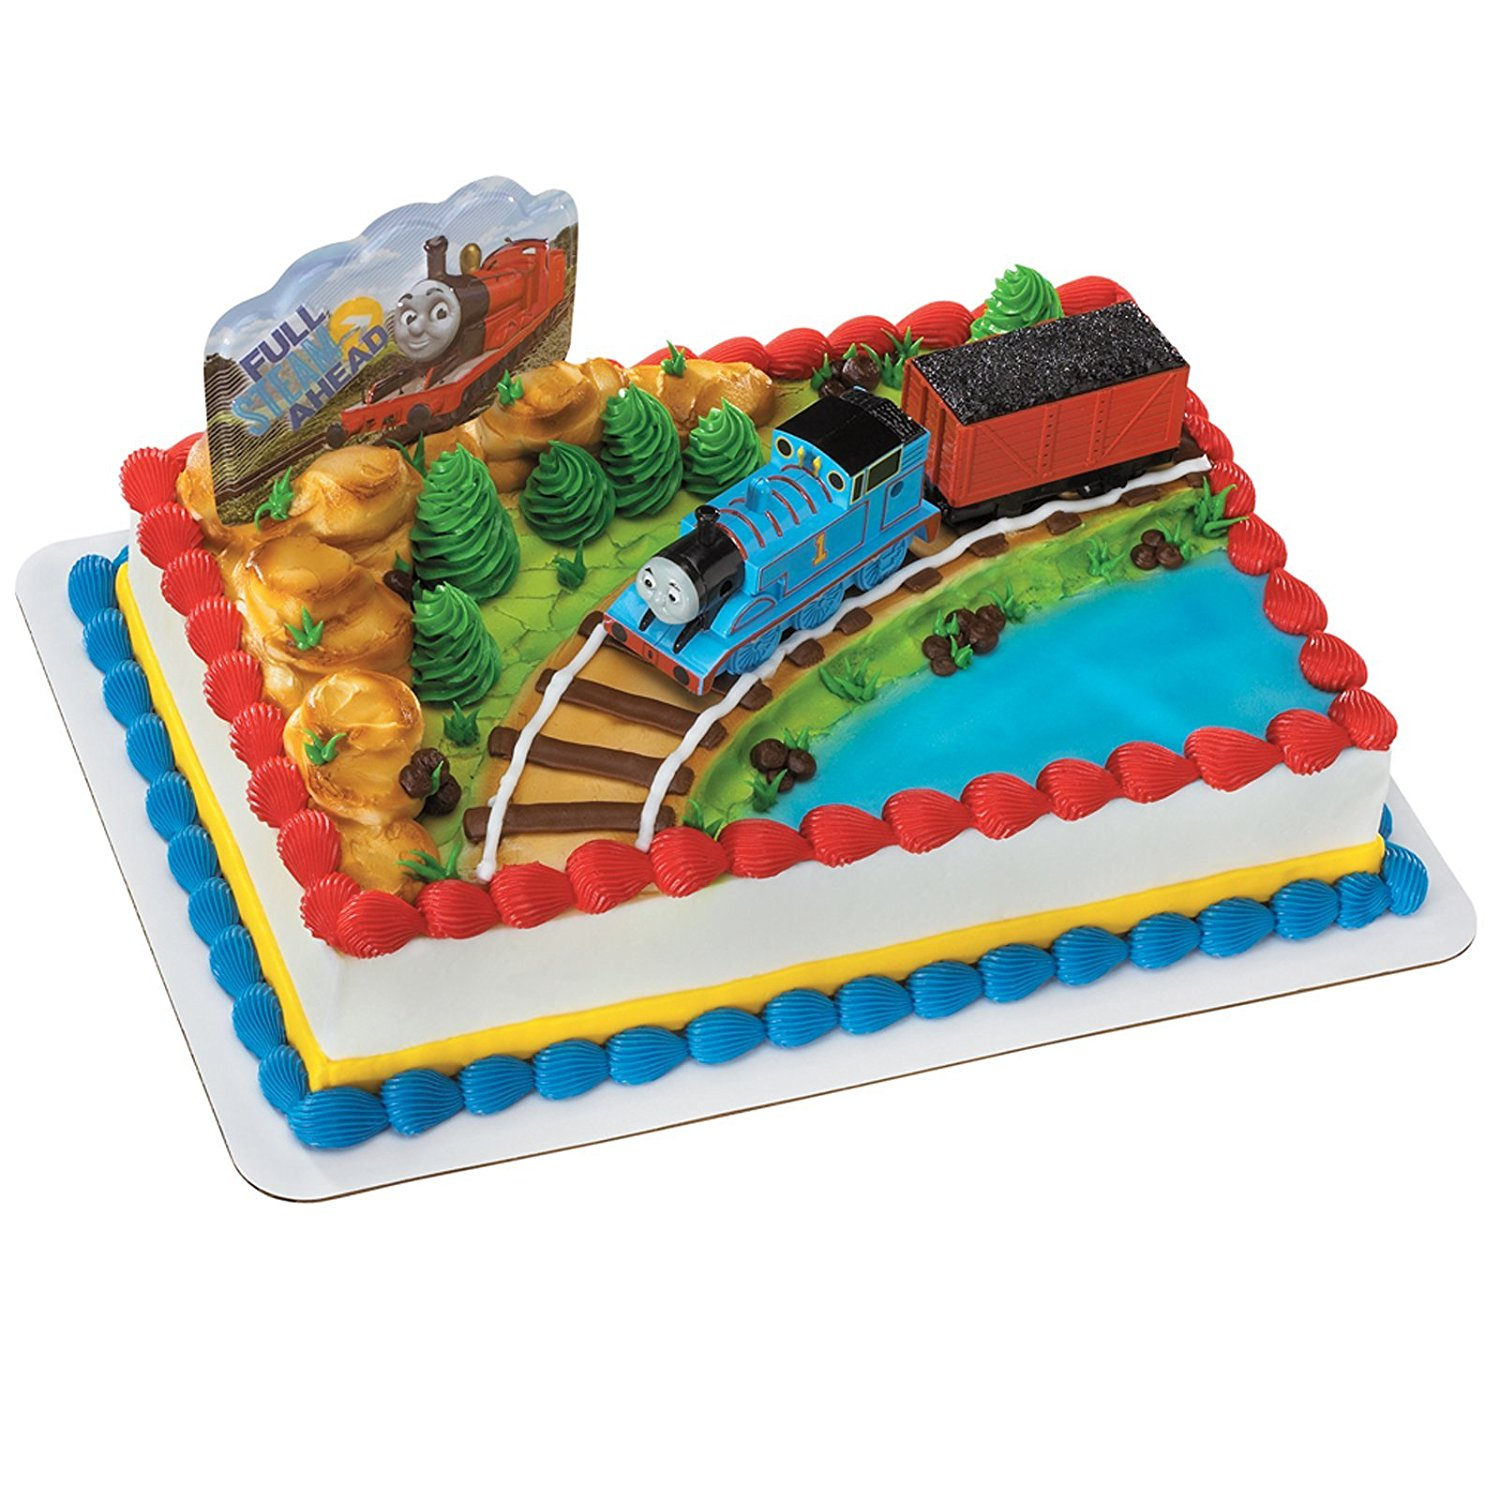 Cheap Car Cake Pictures Find Car Cake Pictures Deals On Line At